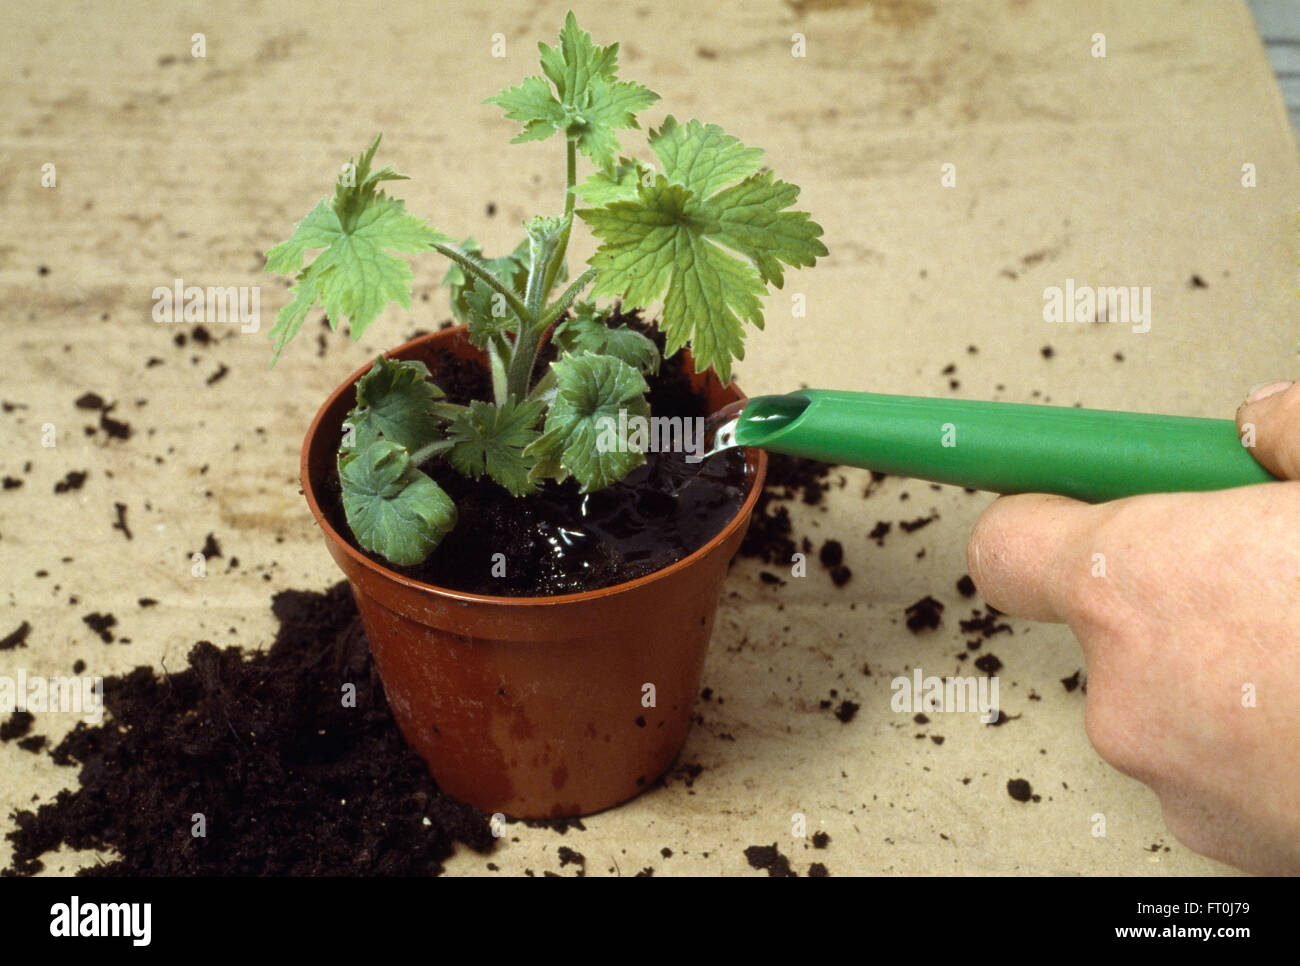 Close-up of a hand watering a small geranium in a pot - Stock Image